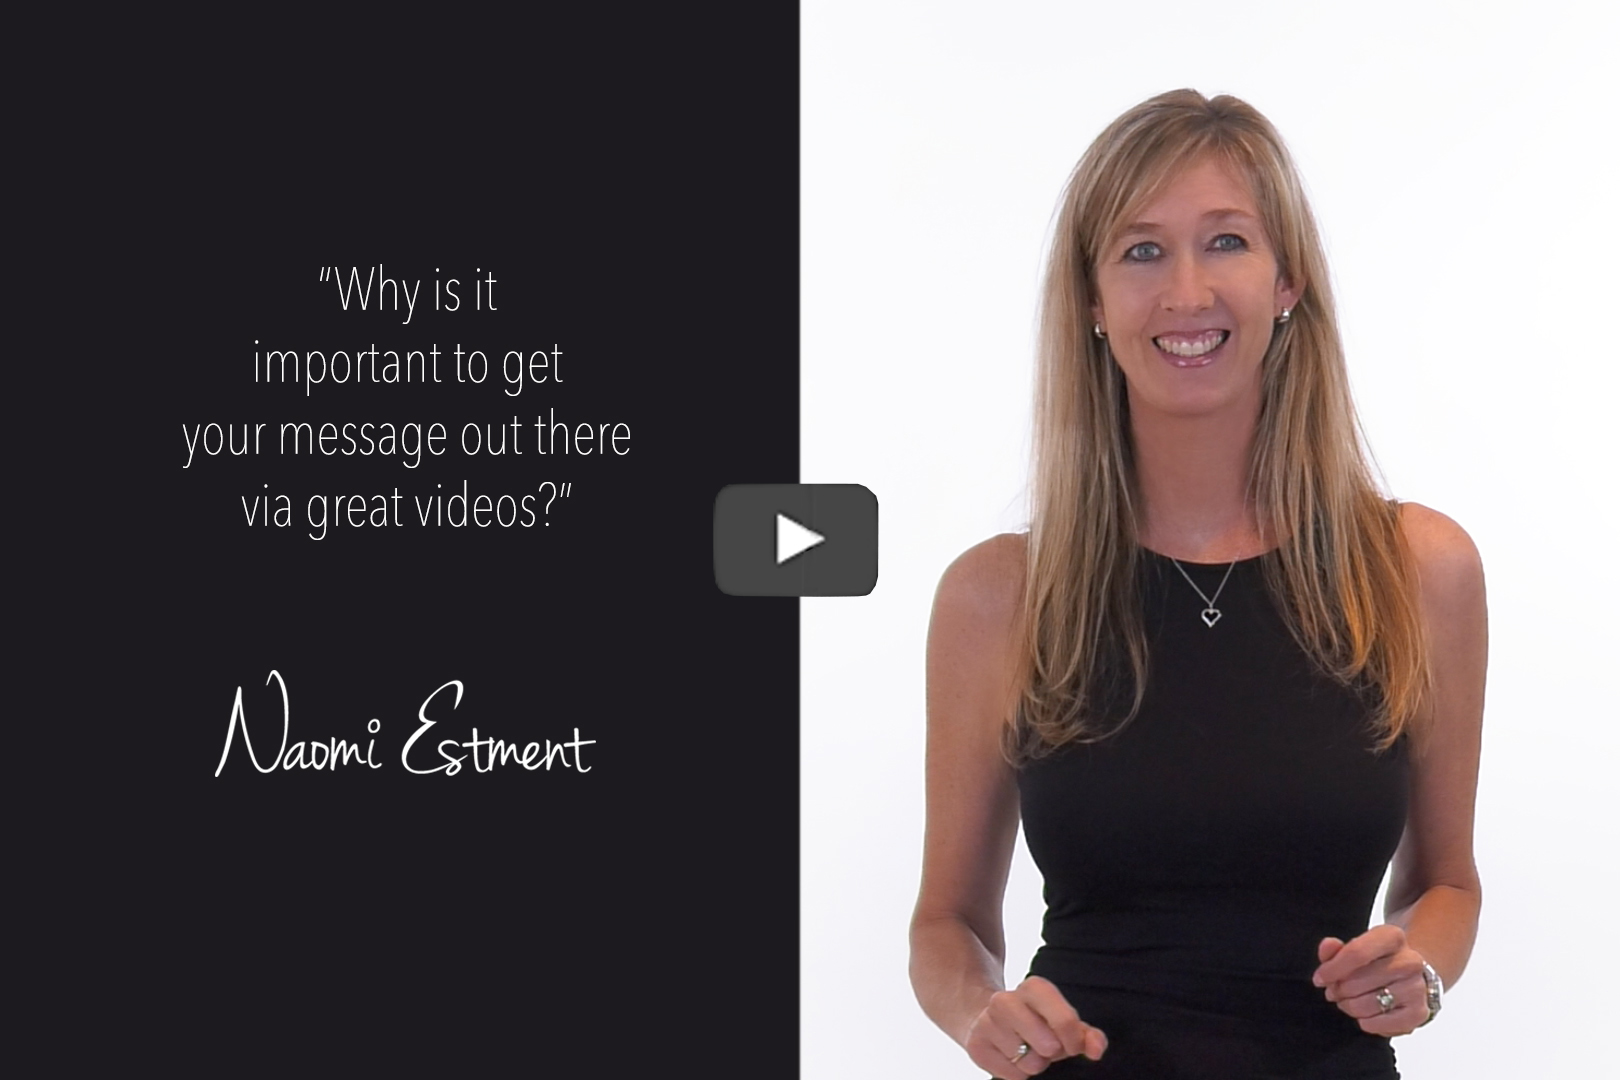 Naomi Estment Video Tips Quote